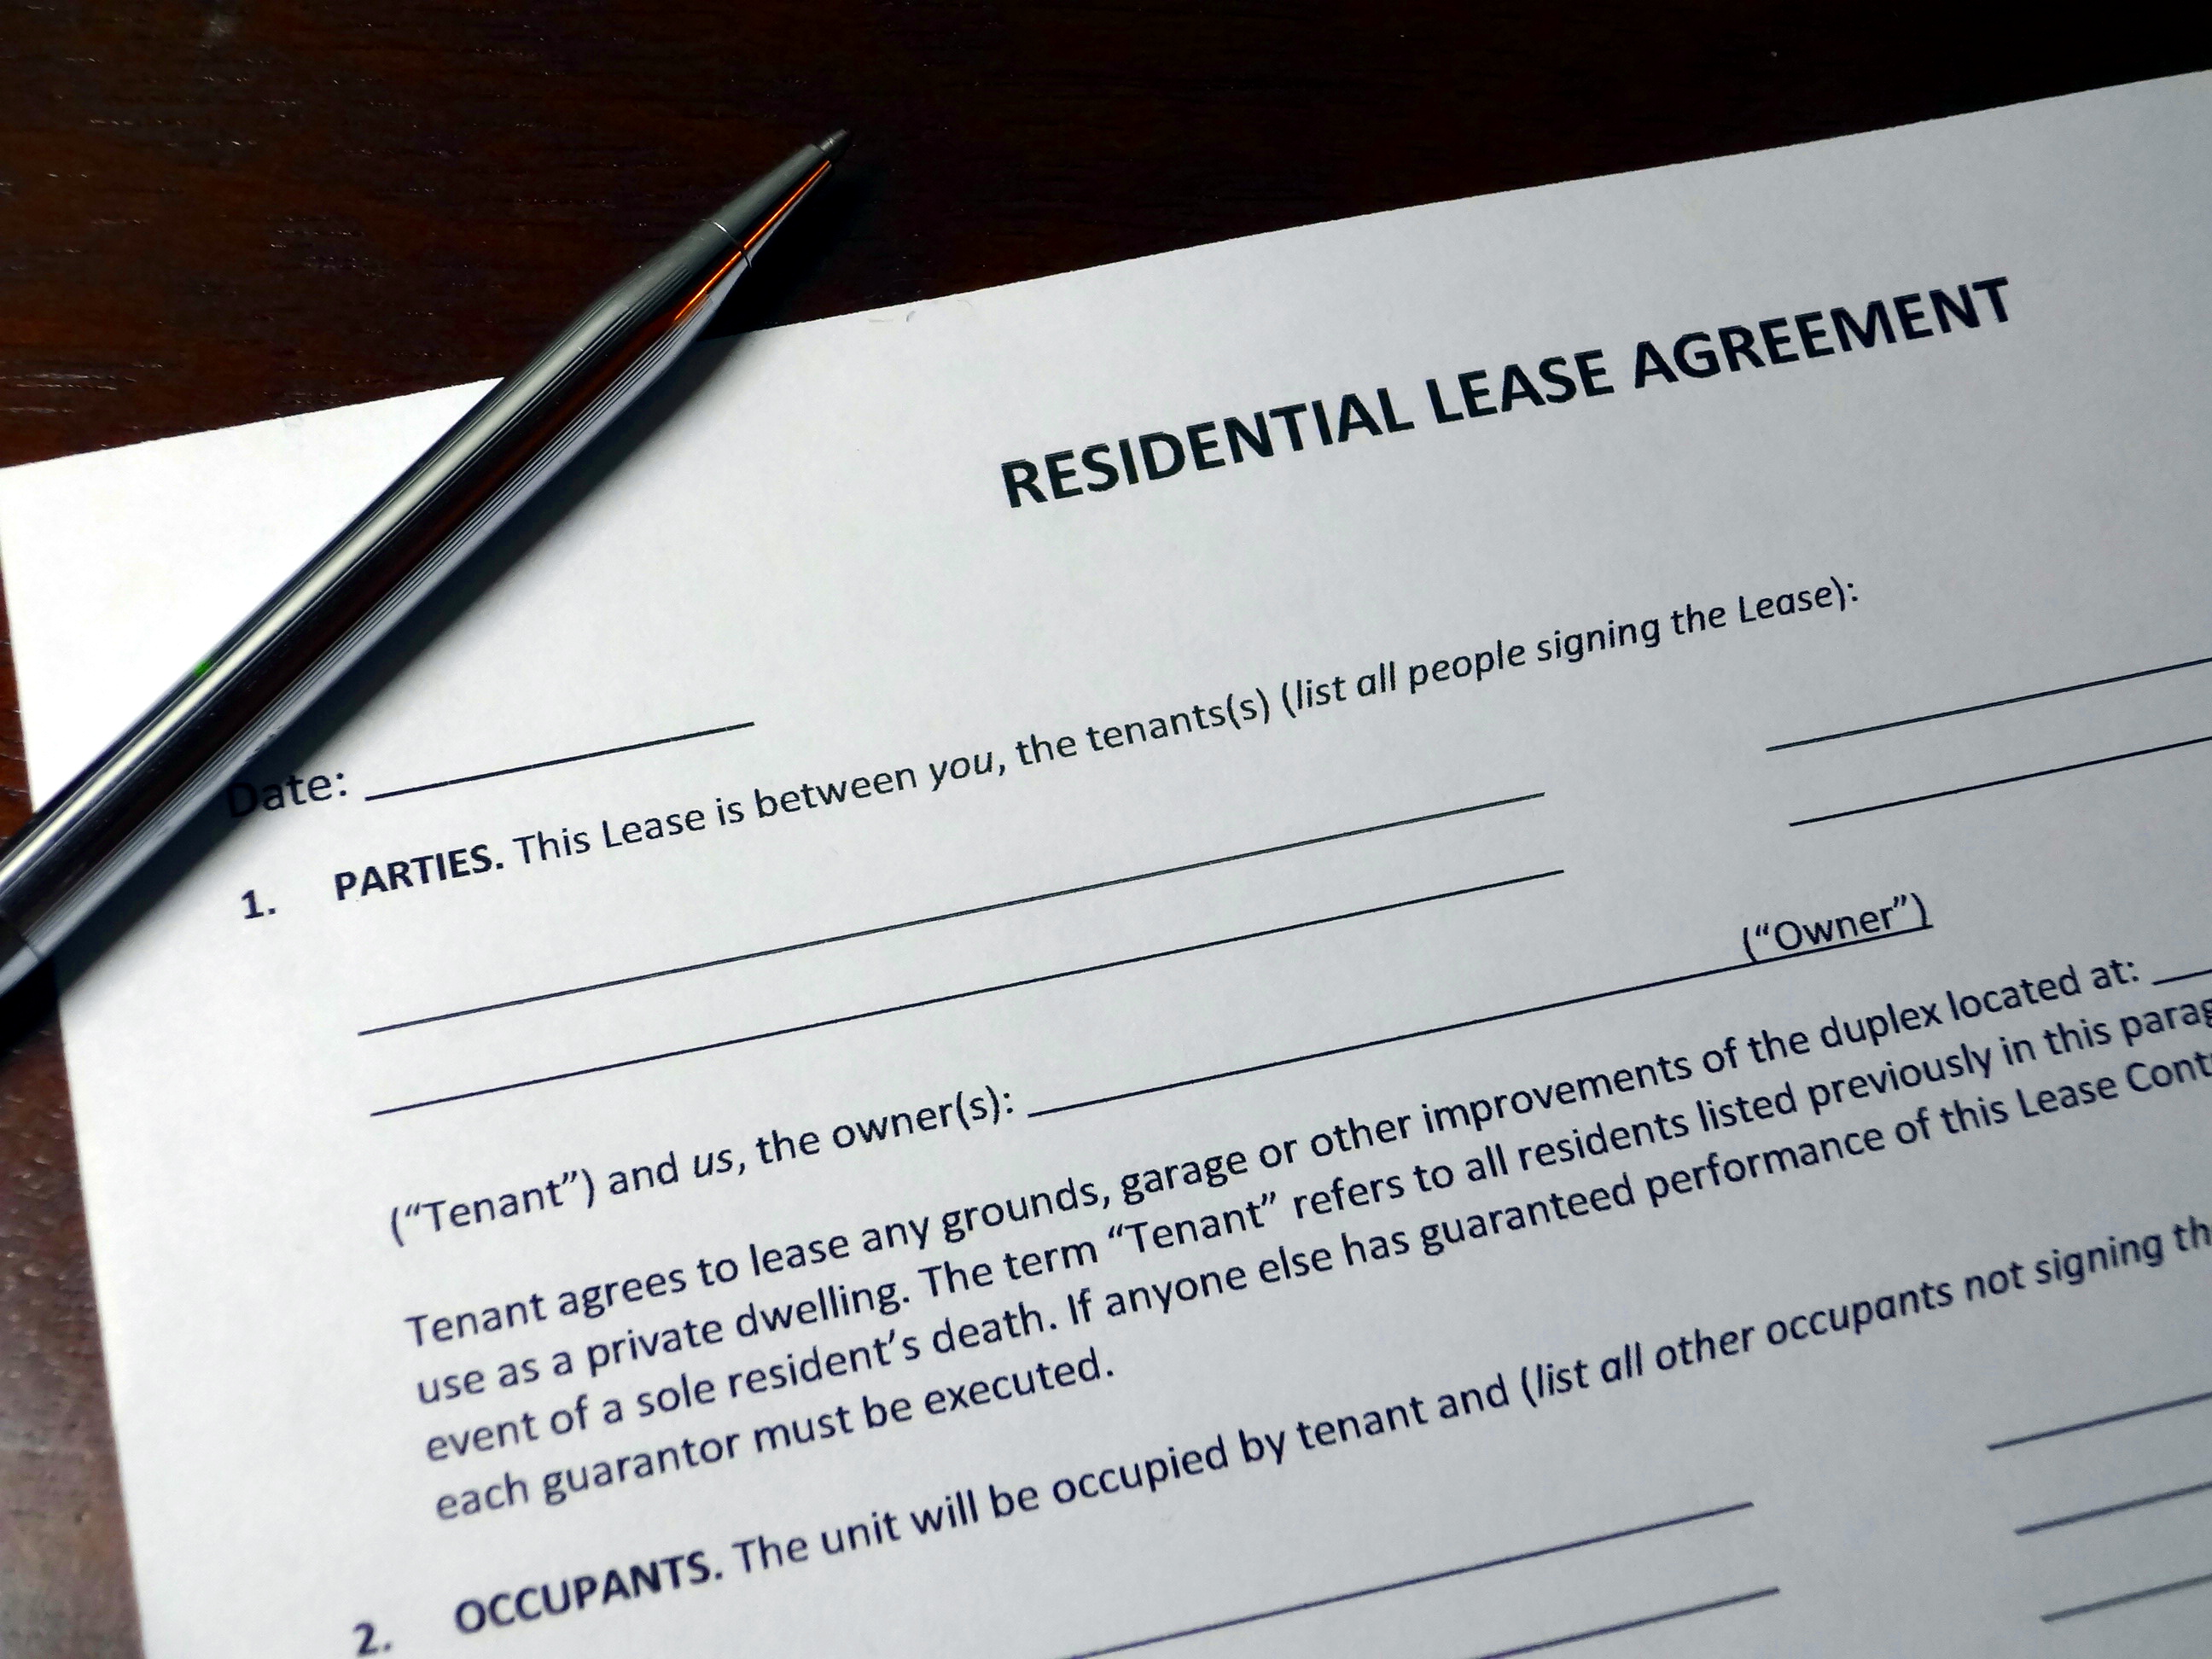 Residential Lease Agreement 101 Common Issues That May Occur And